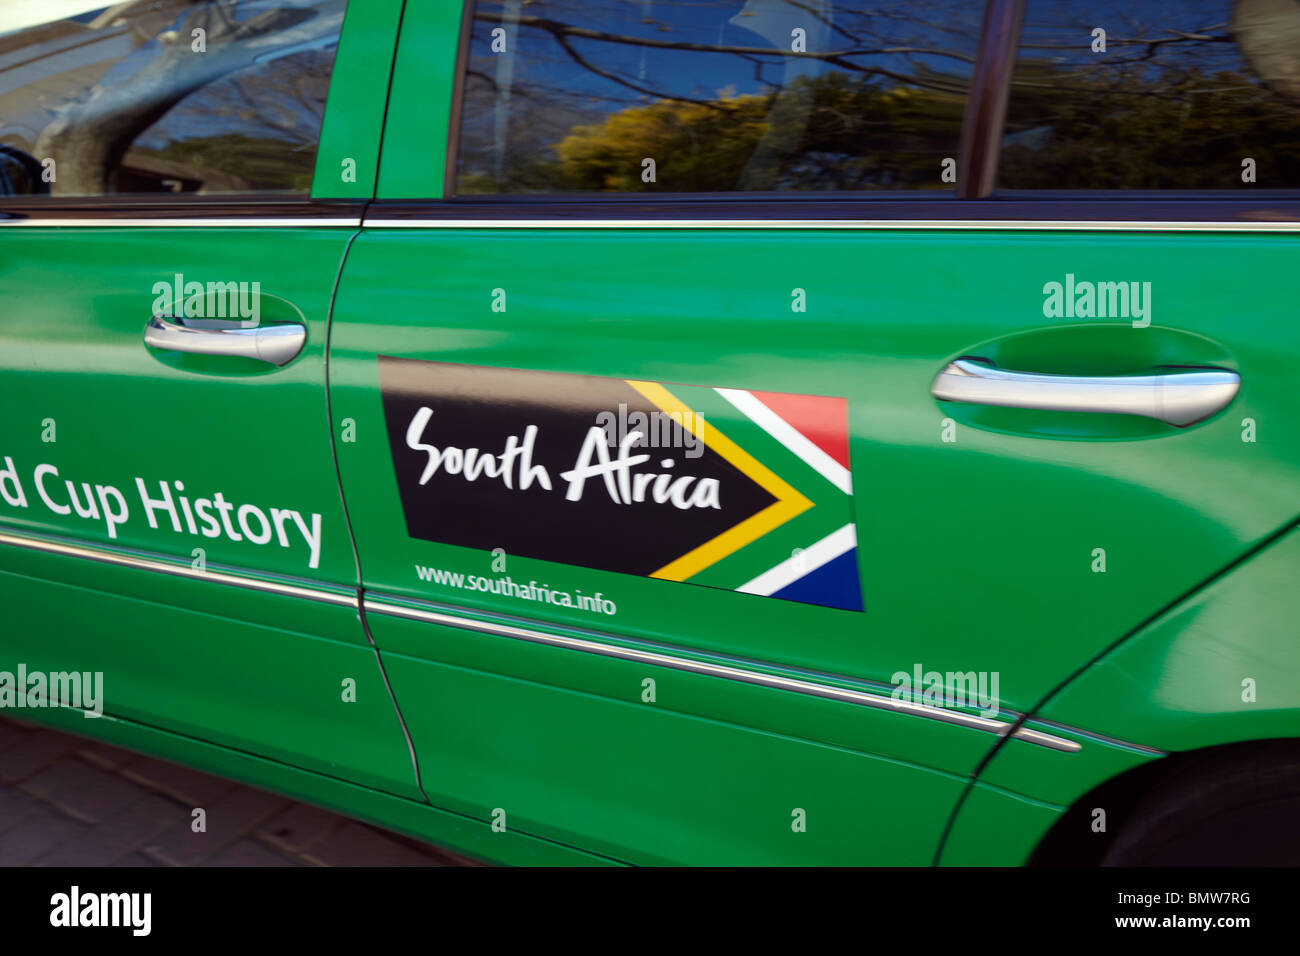 World cup taxi south africa stock image